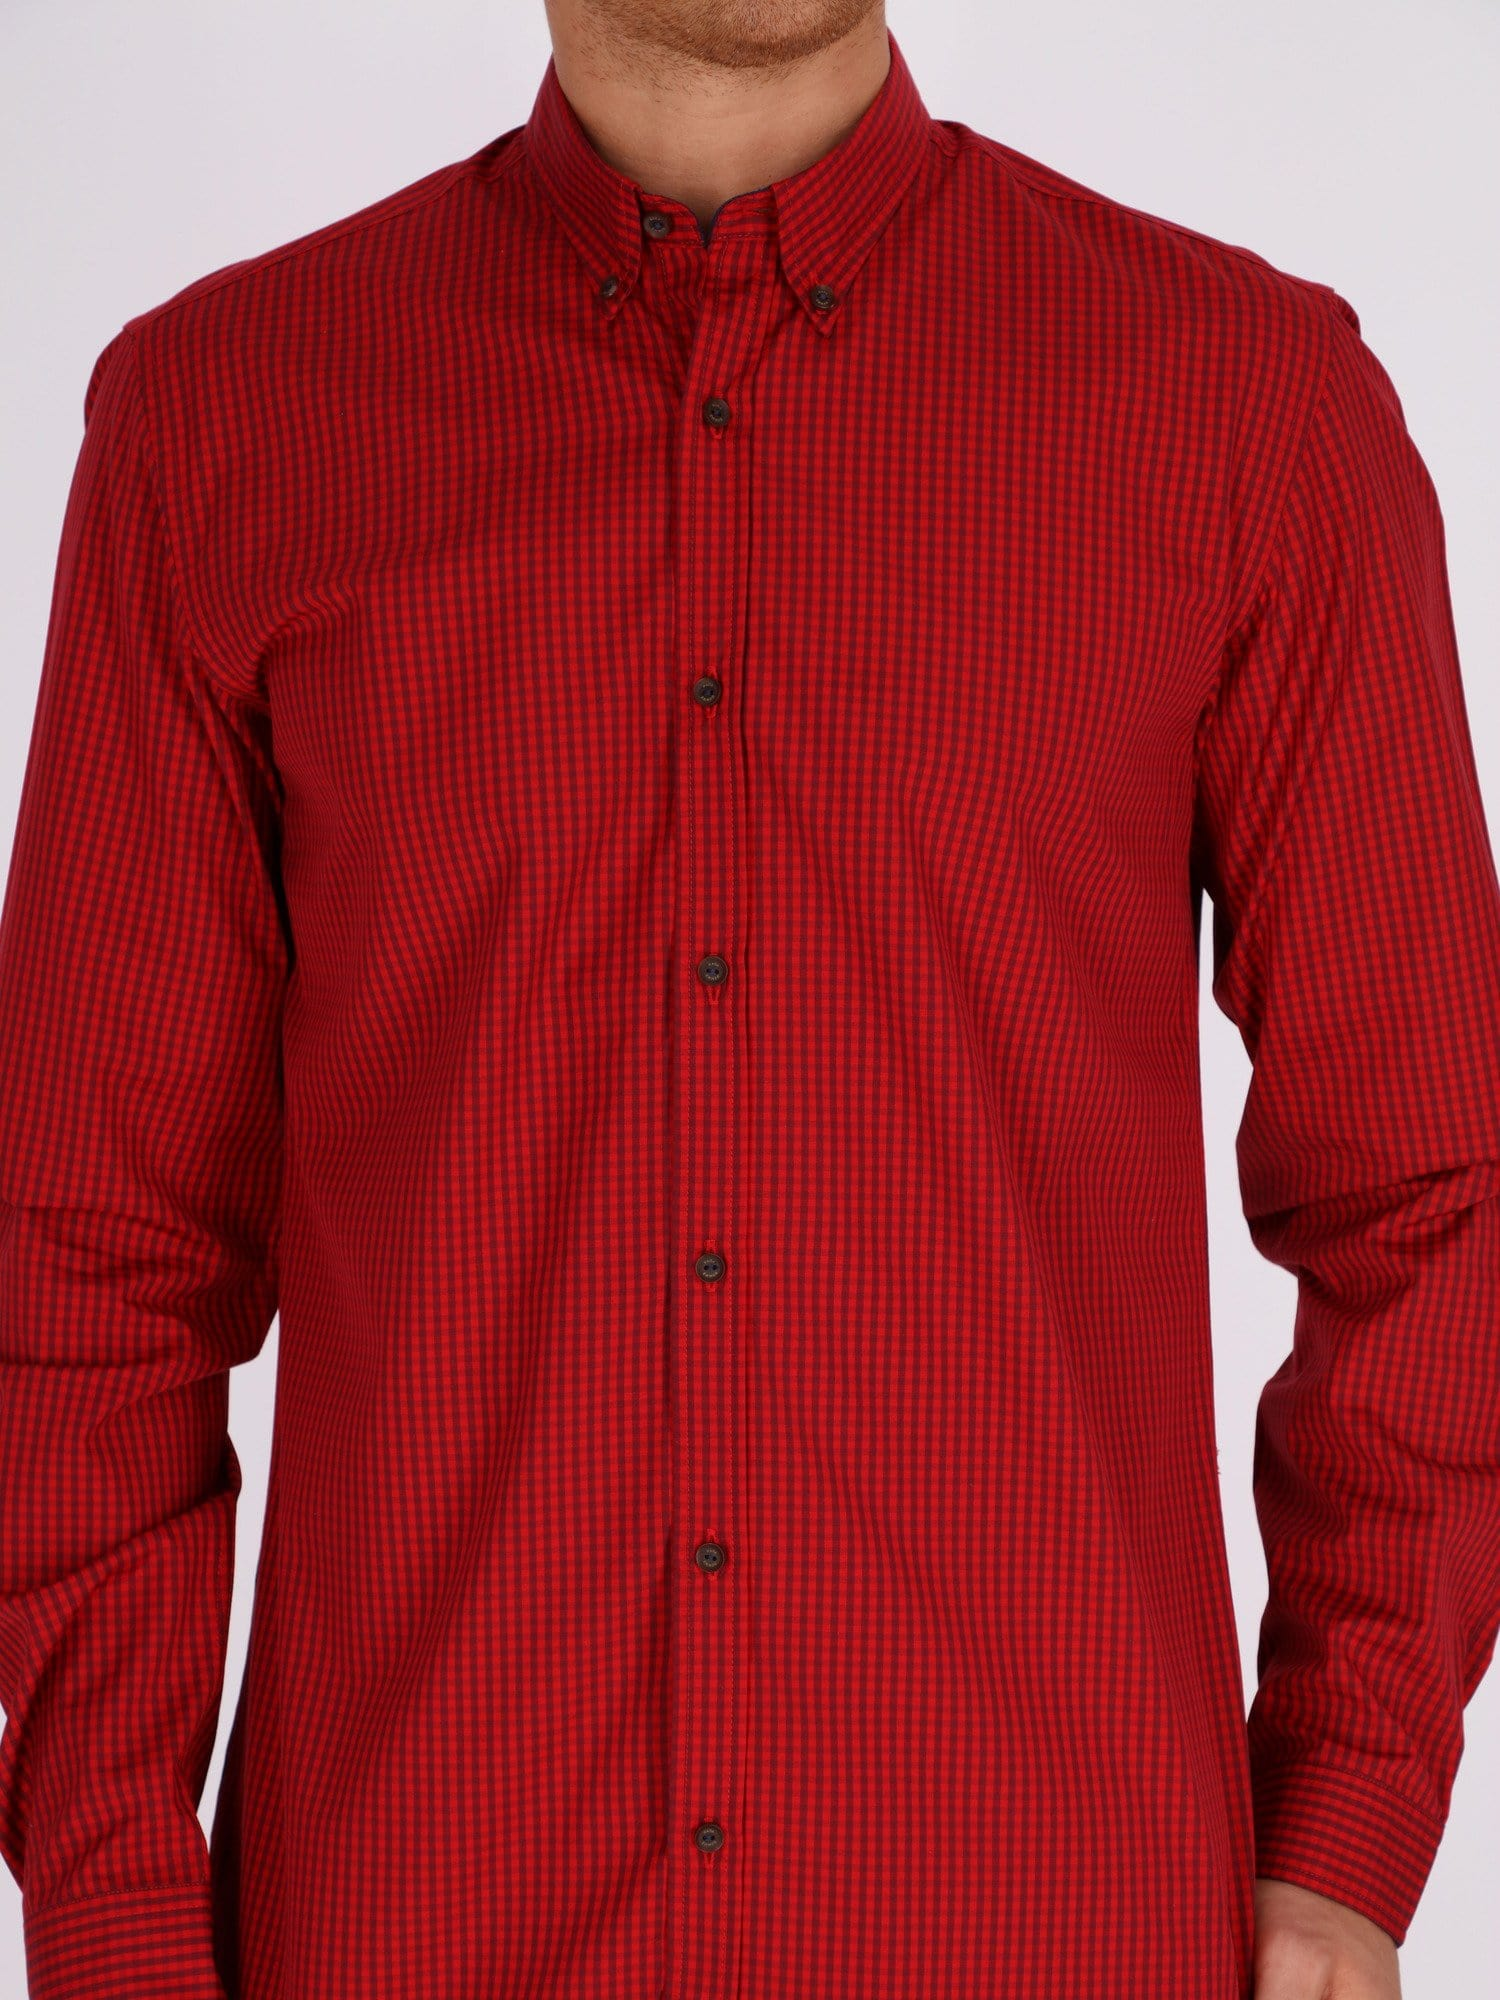 Naga Homme Shirts Casual Pin Check Long Sleeve Shirt